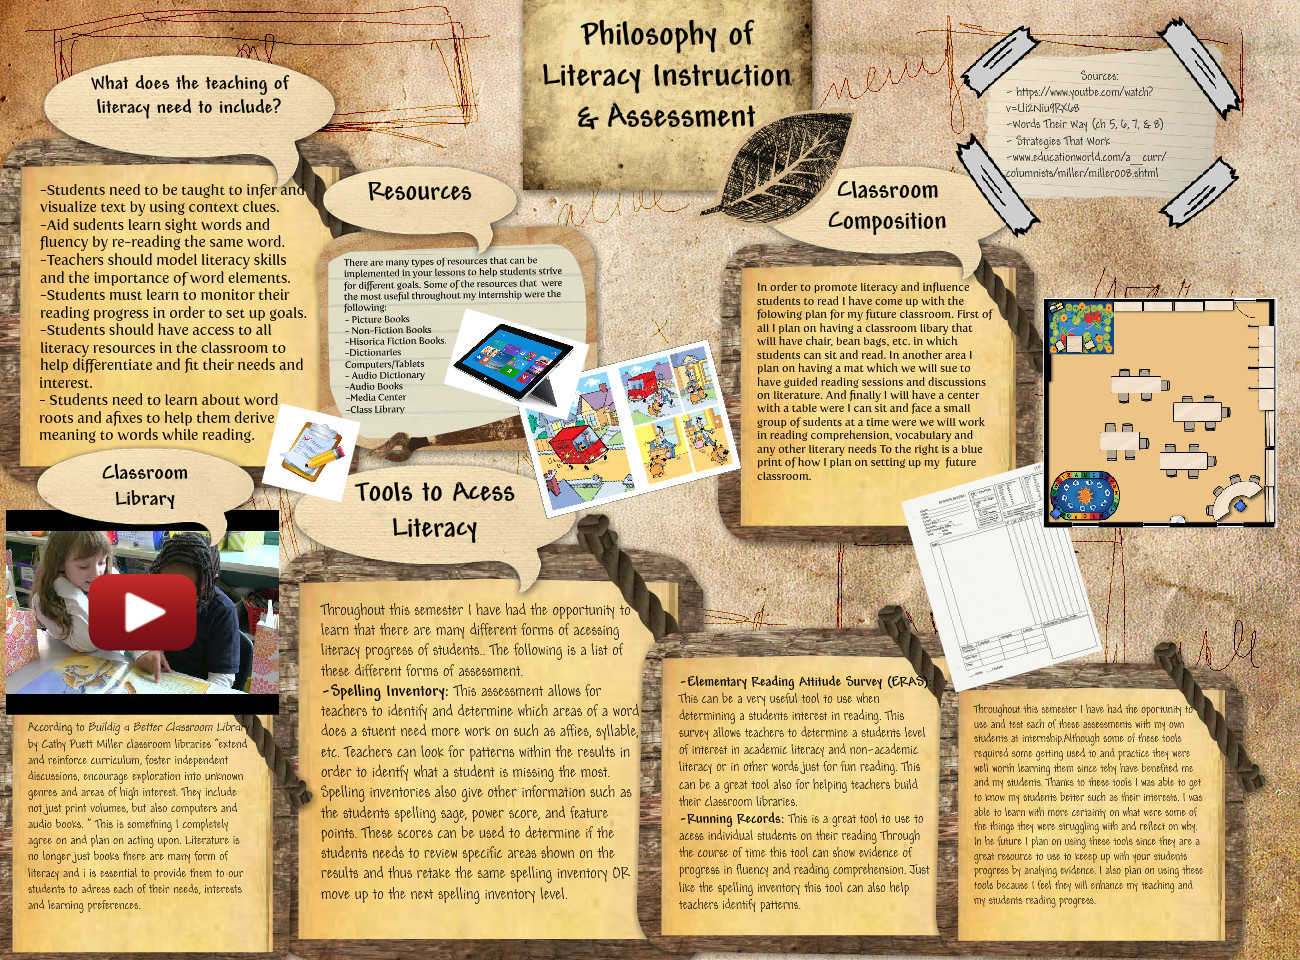 Philosophy of Literacy Instruction And Assessment